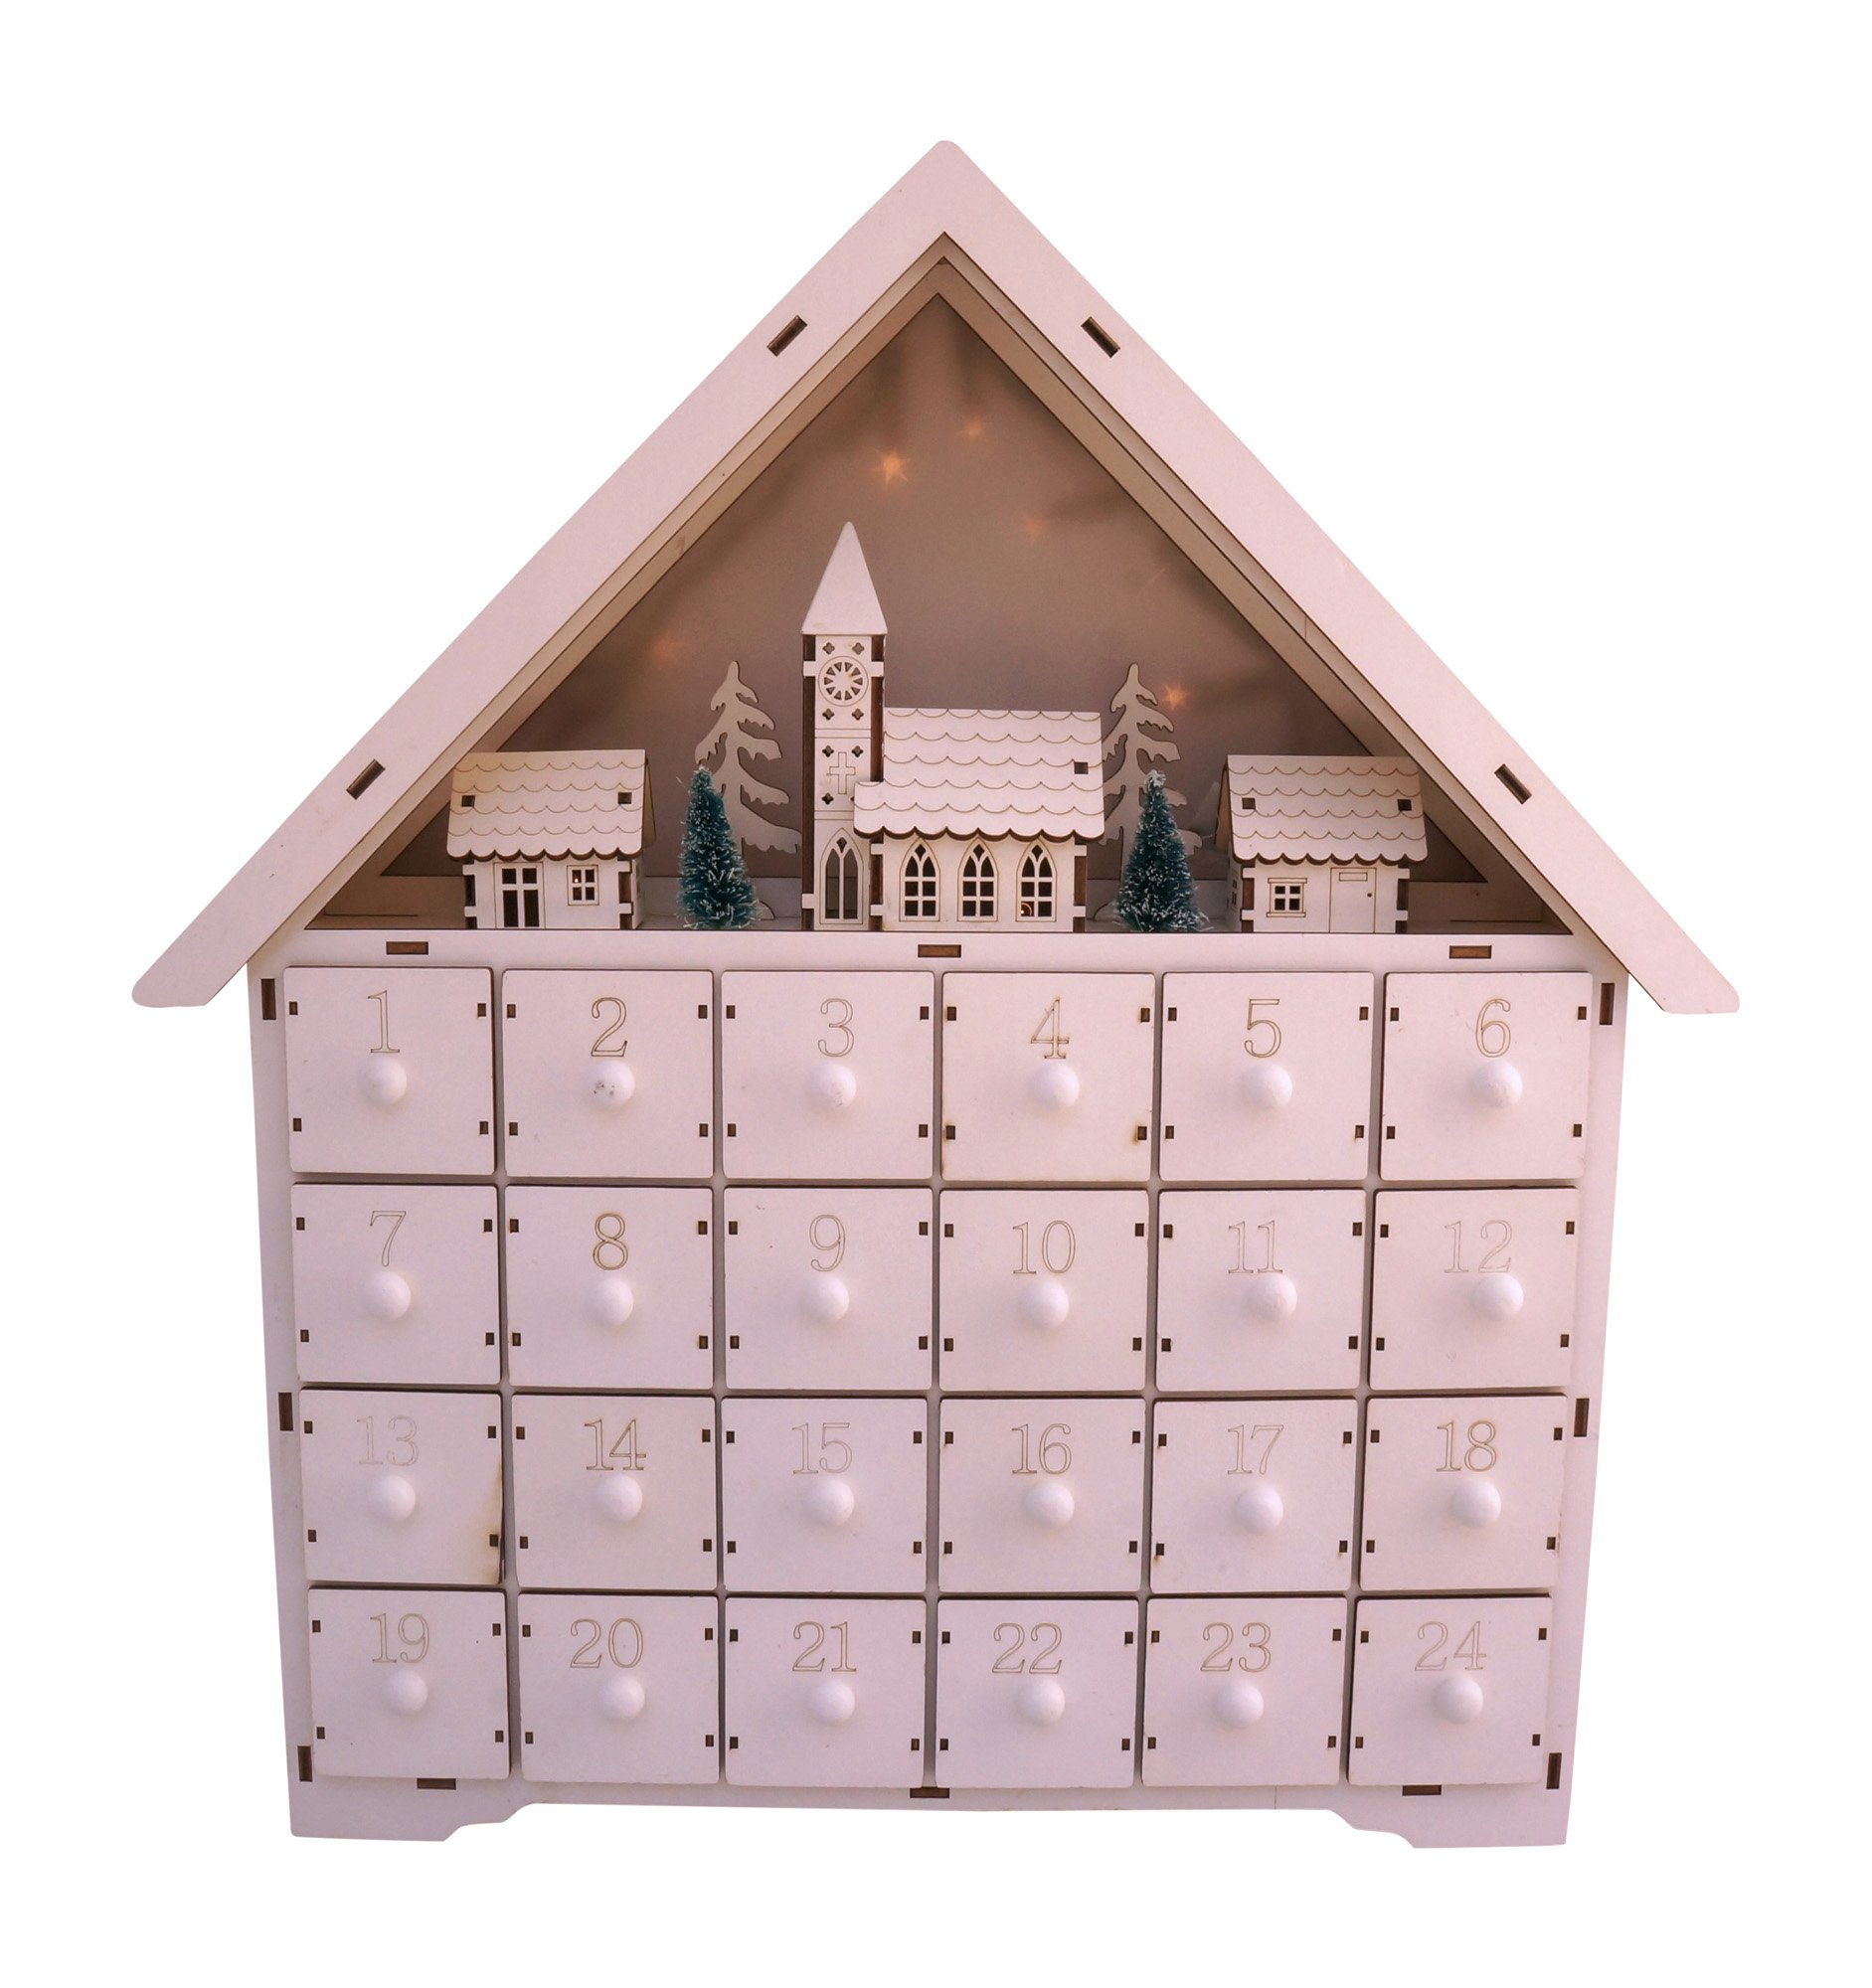 LED Lighted White Wooden Bavarian Village Scene Advent Calendar - Christmas Decoration with 24 Storage Drawers by Unknown